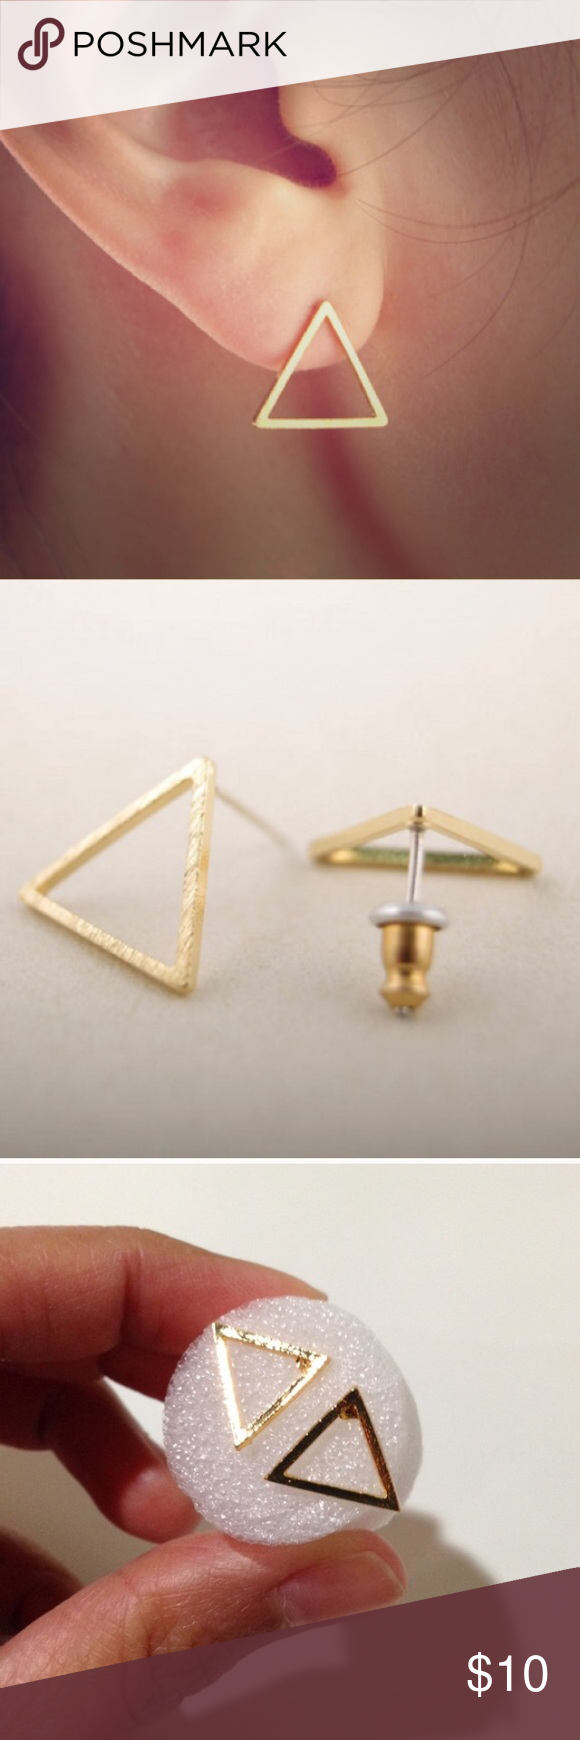 Triangle Gold Plated Earrings Brand new chic and classy triangle studs! Made of zinc alloy. Great to wear at the office or anywhere 💕 Jewelry Earrings